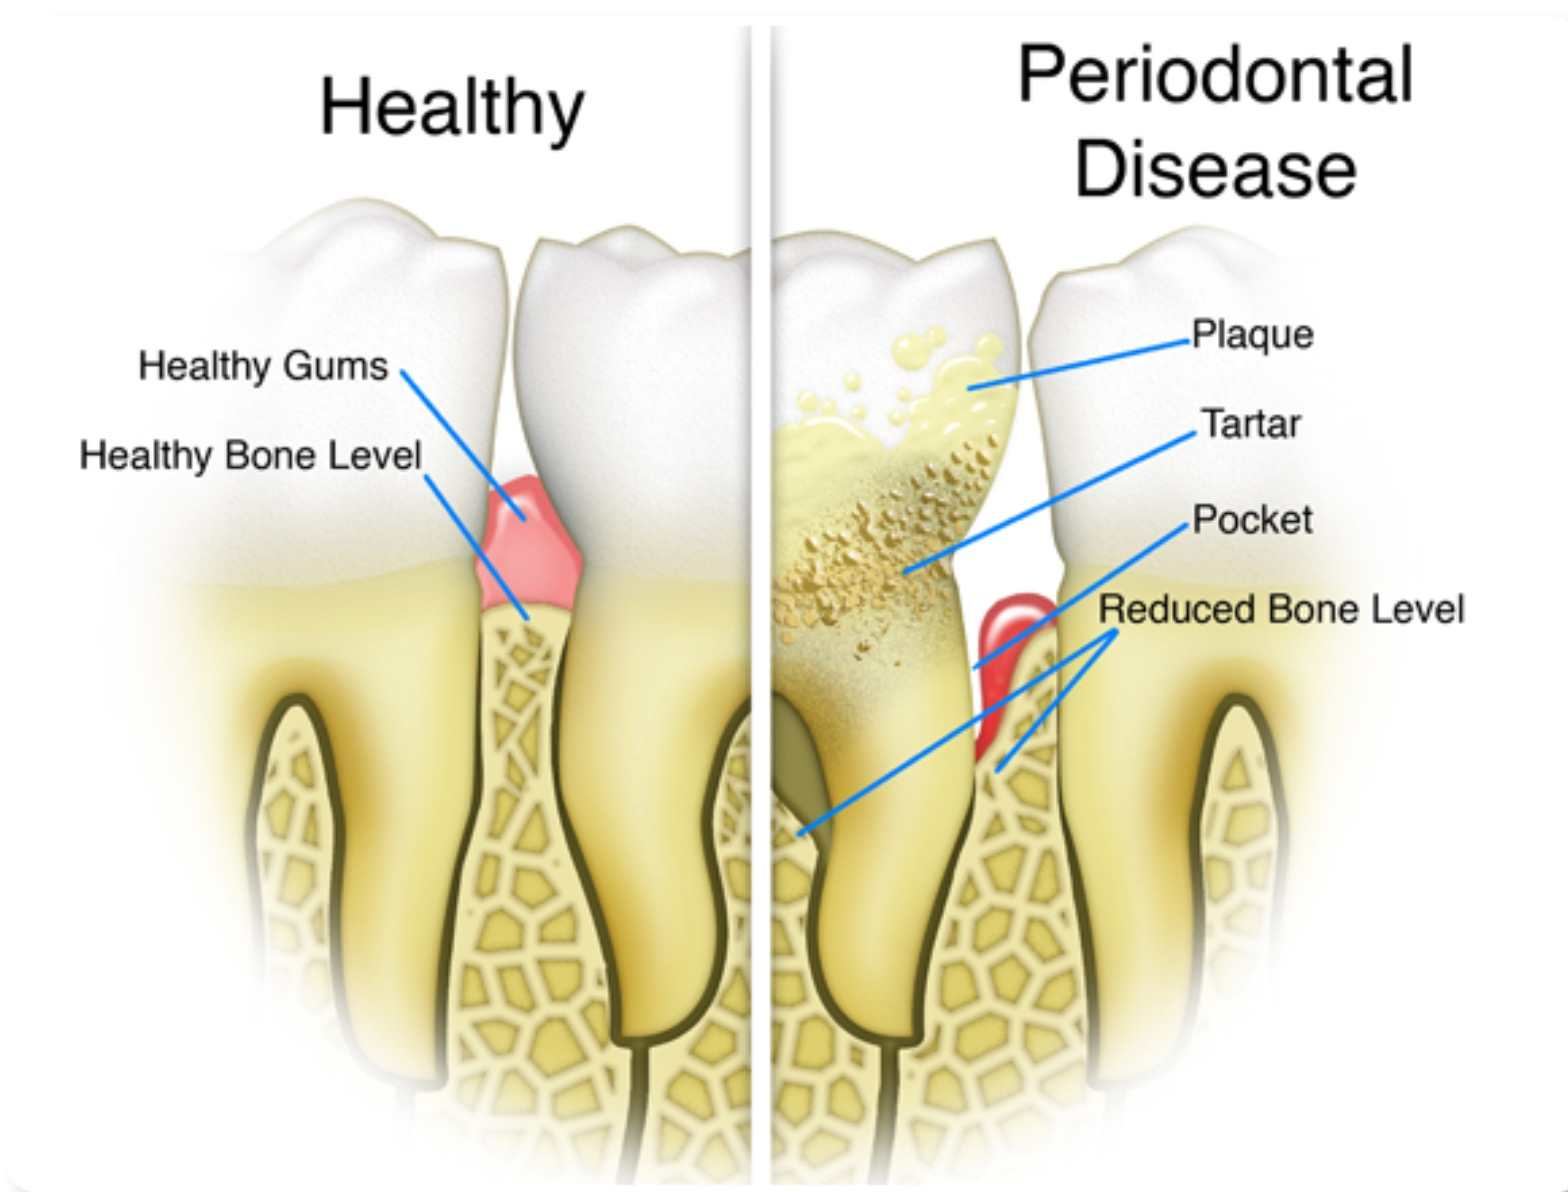 periodontal disease graphic